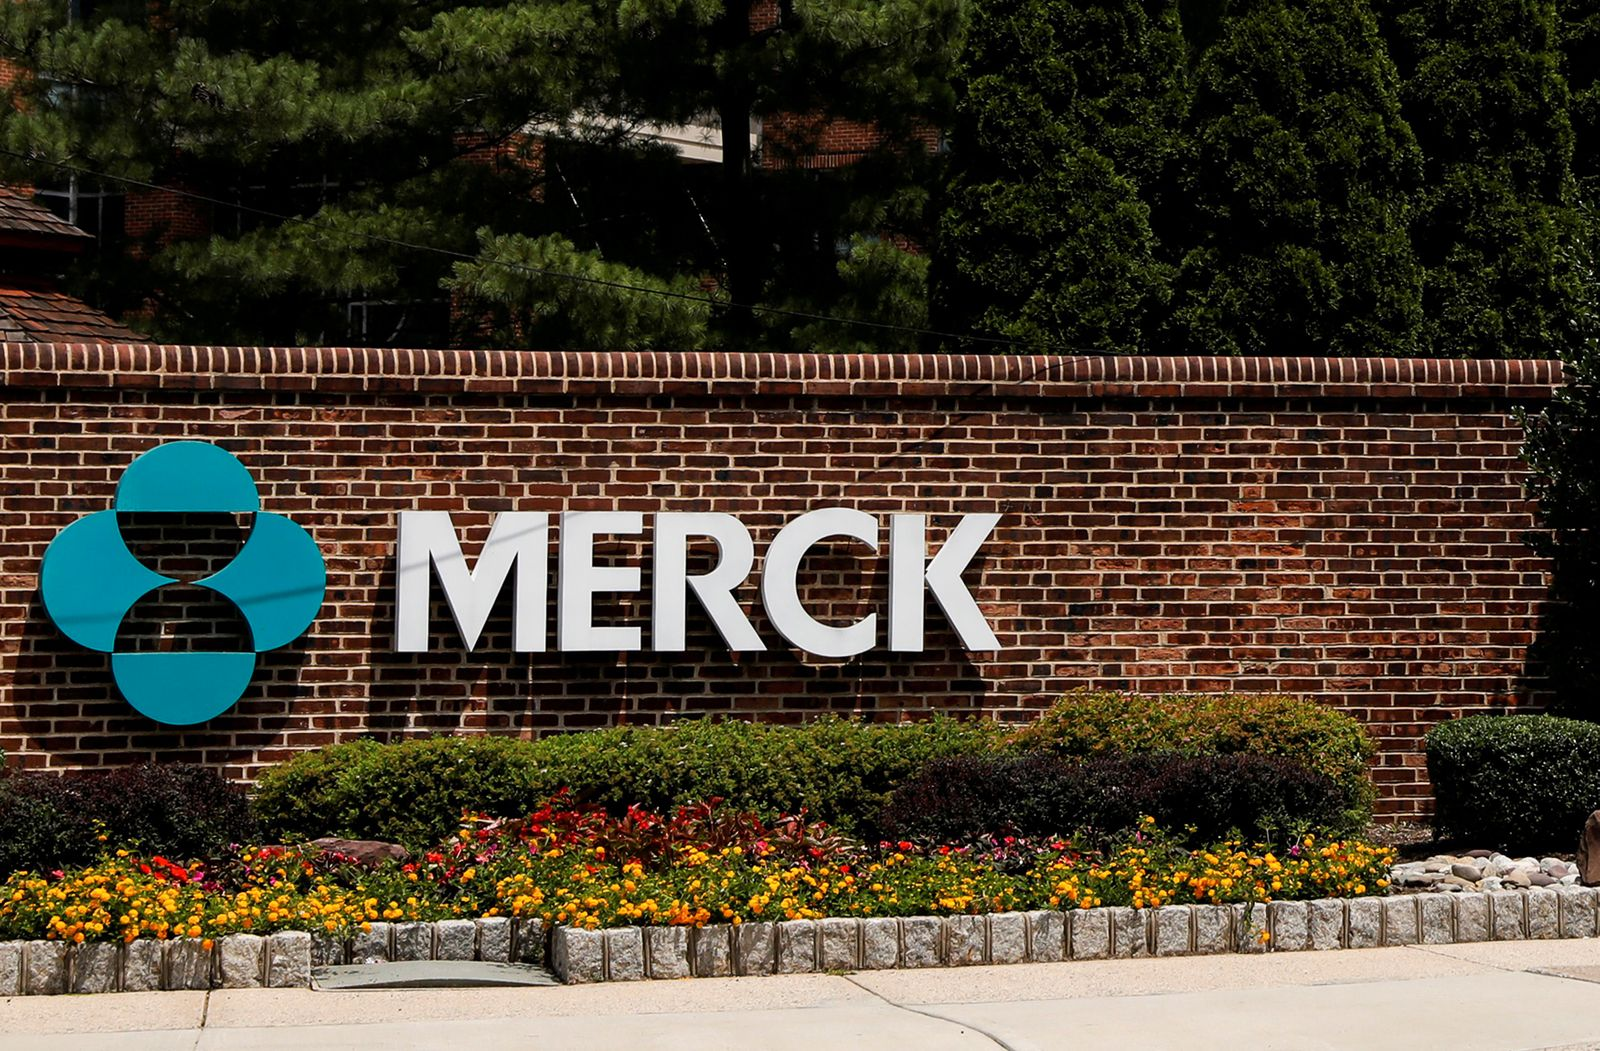 FILE PHOTO: The Merck logo is seen at a gate to the Merck & Co campus in Linden, New Jersey